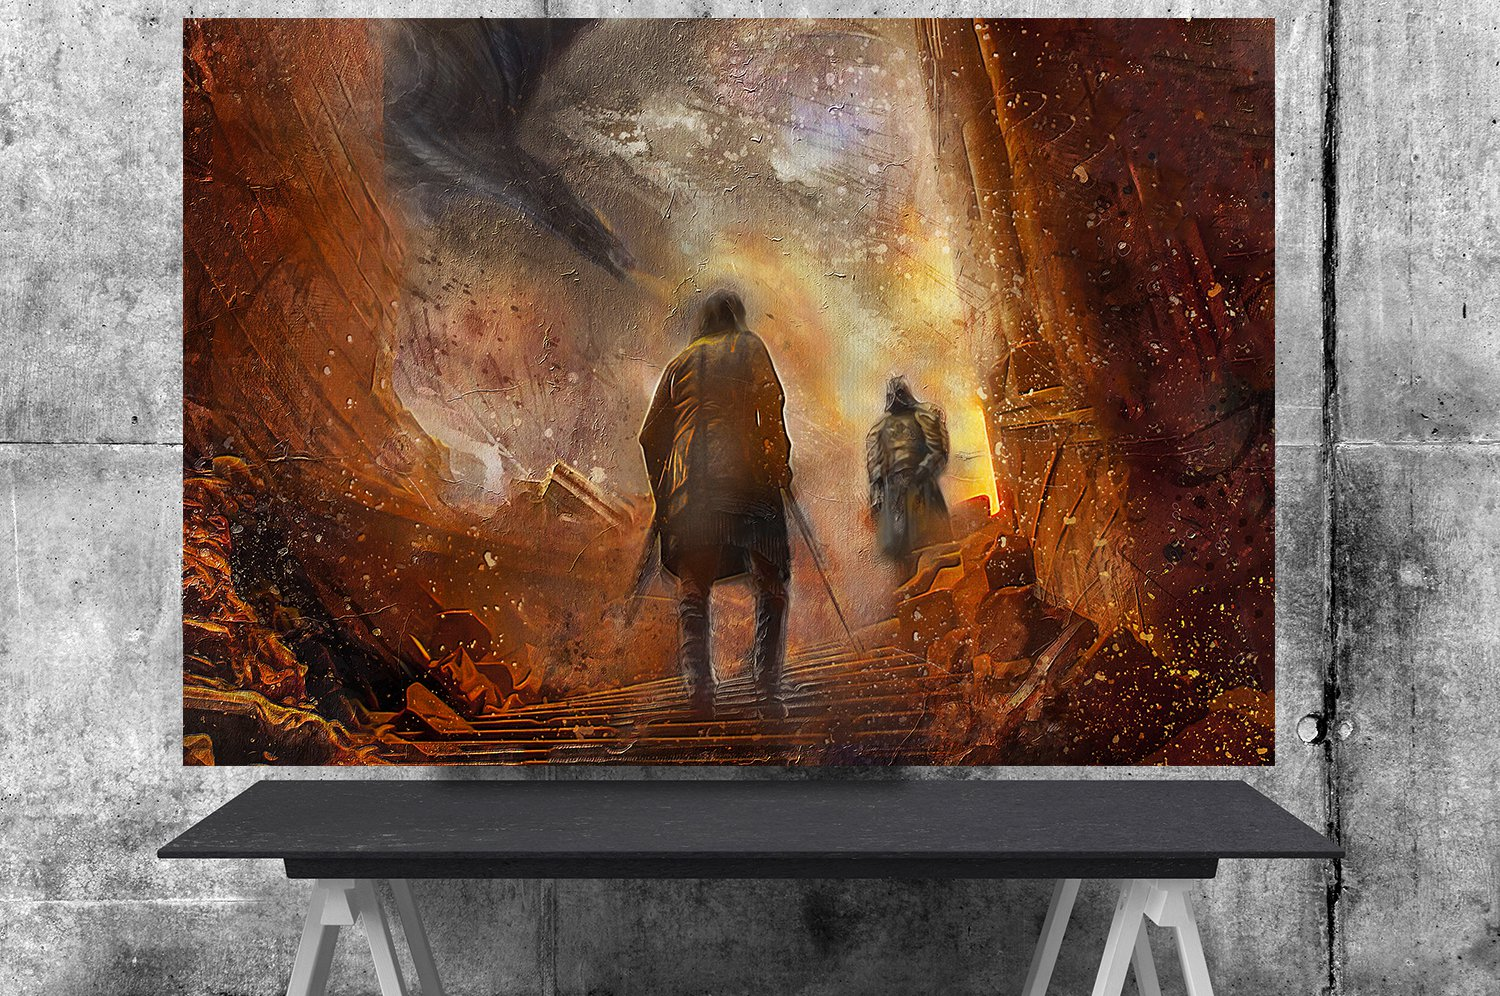 Game of Thrones, The Hound, The Mountain, Cleganebowl, 24x35 inches Canvas Print